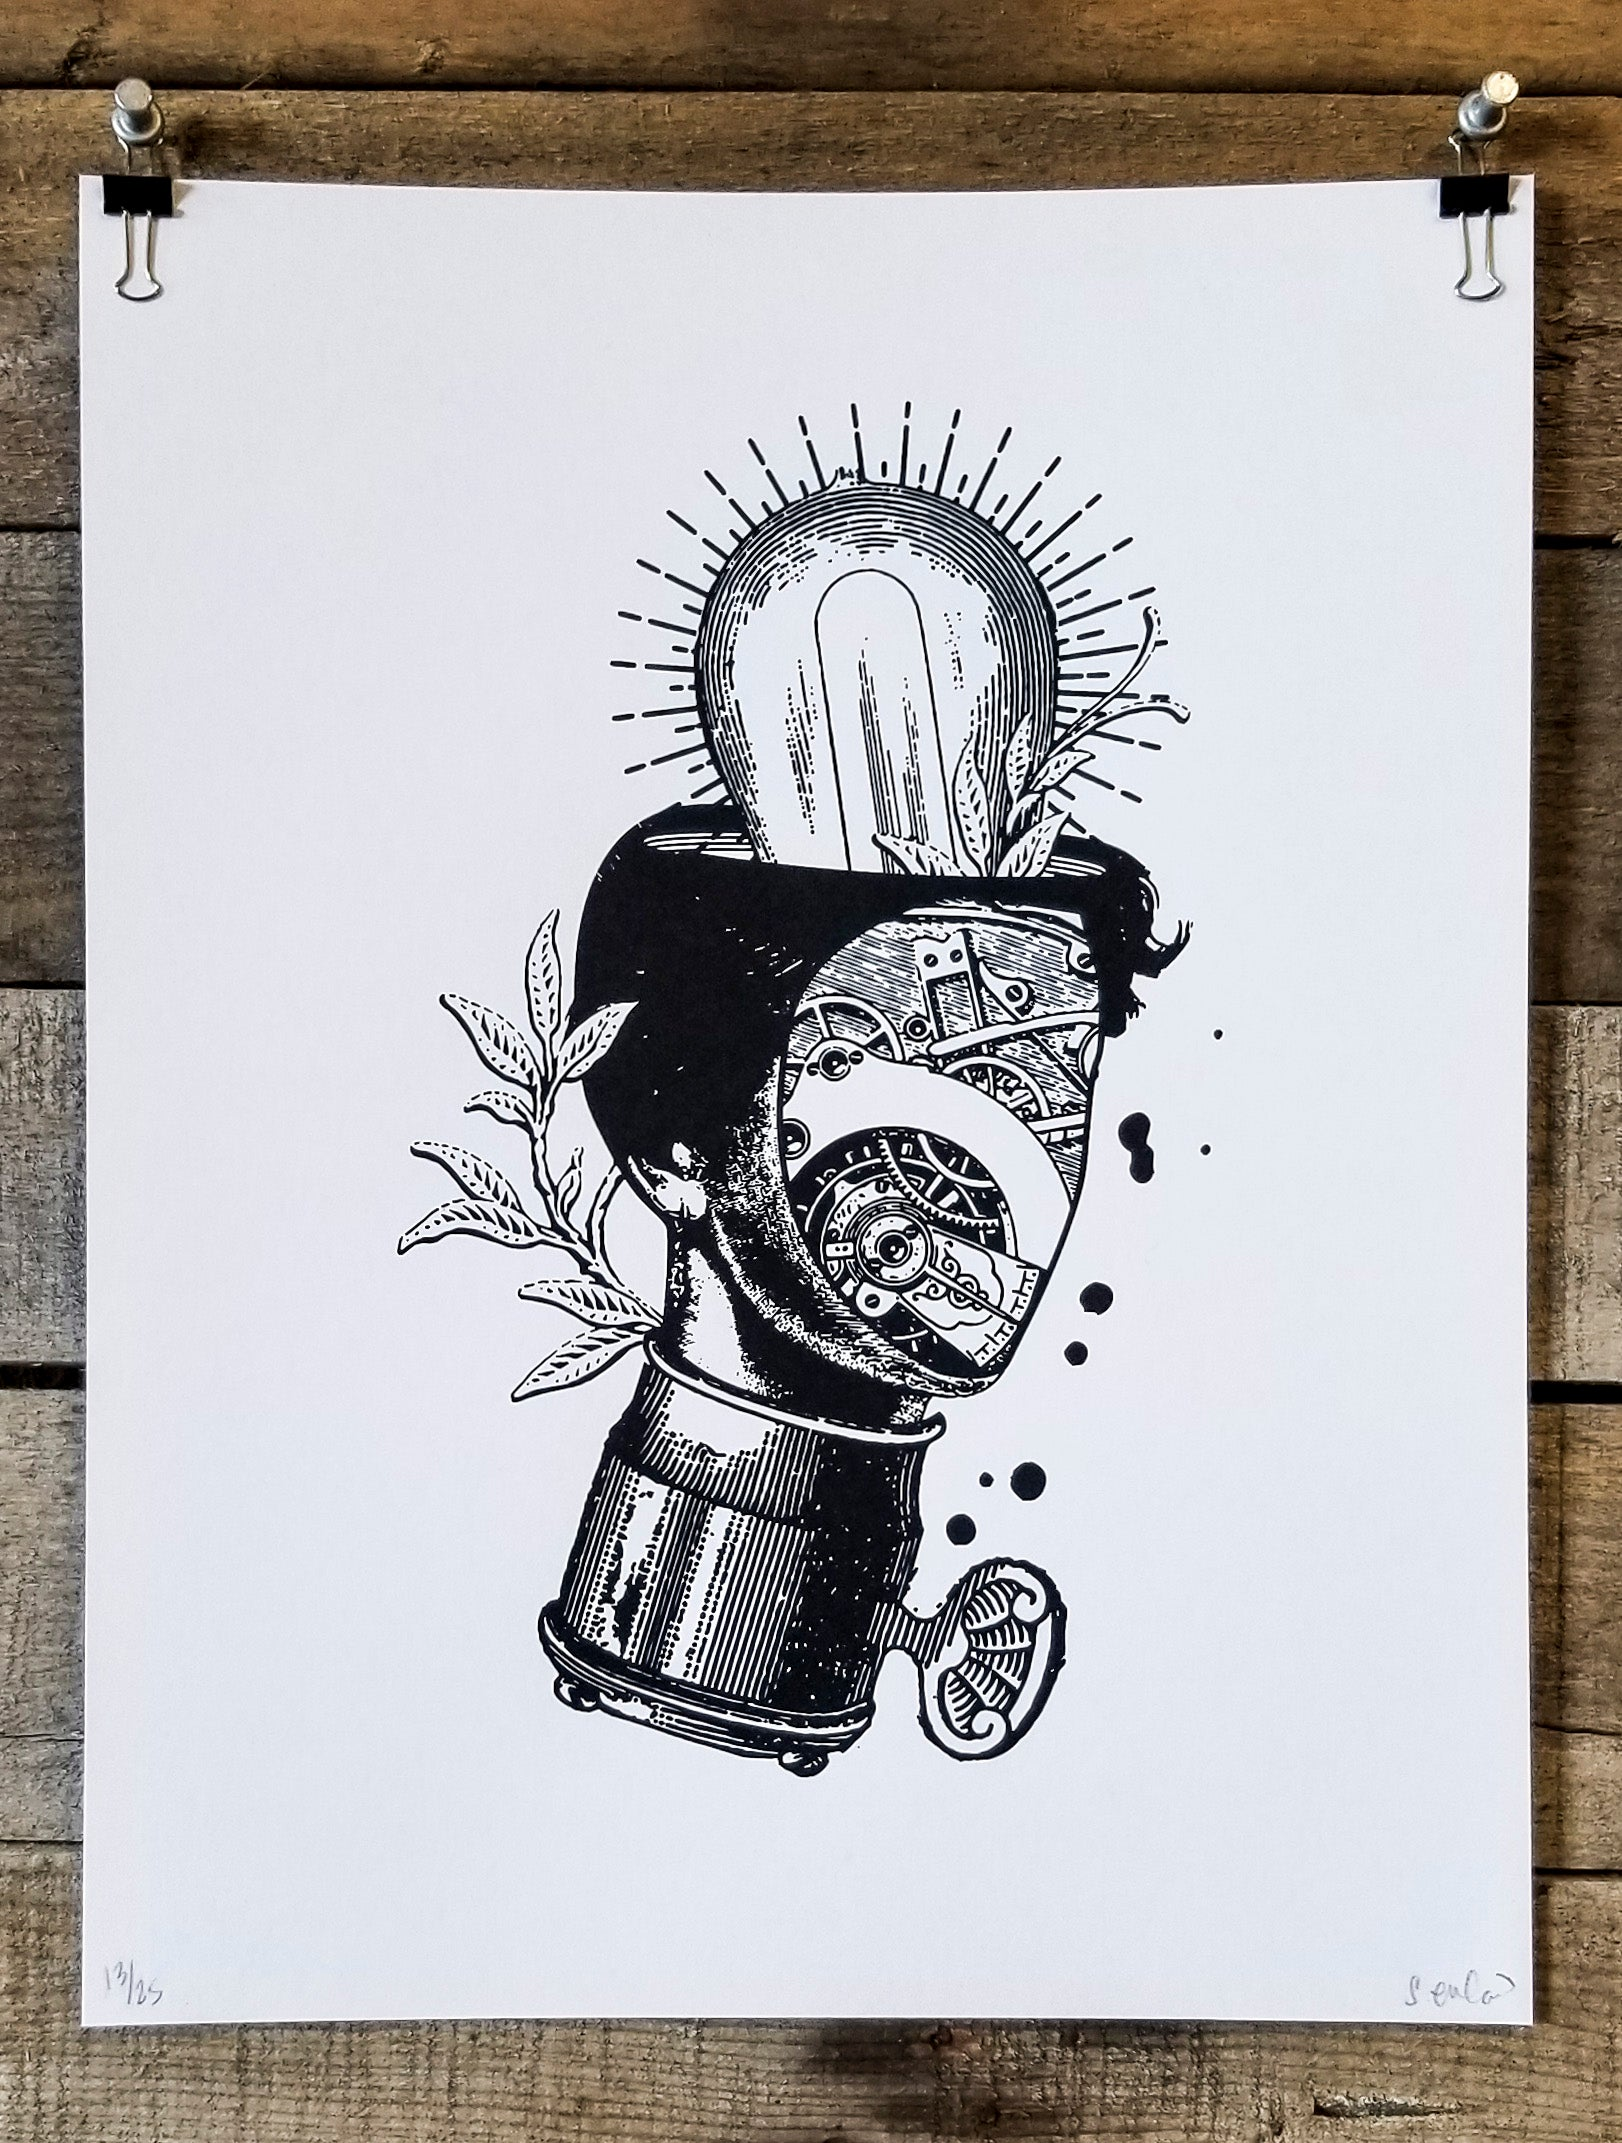 Light Gears • 11x14 Print